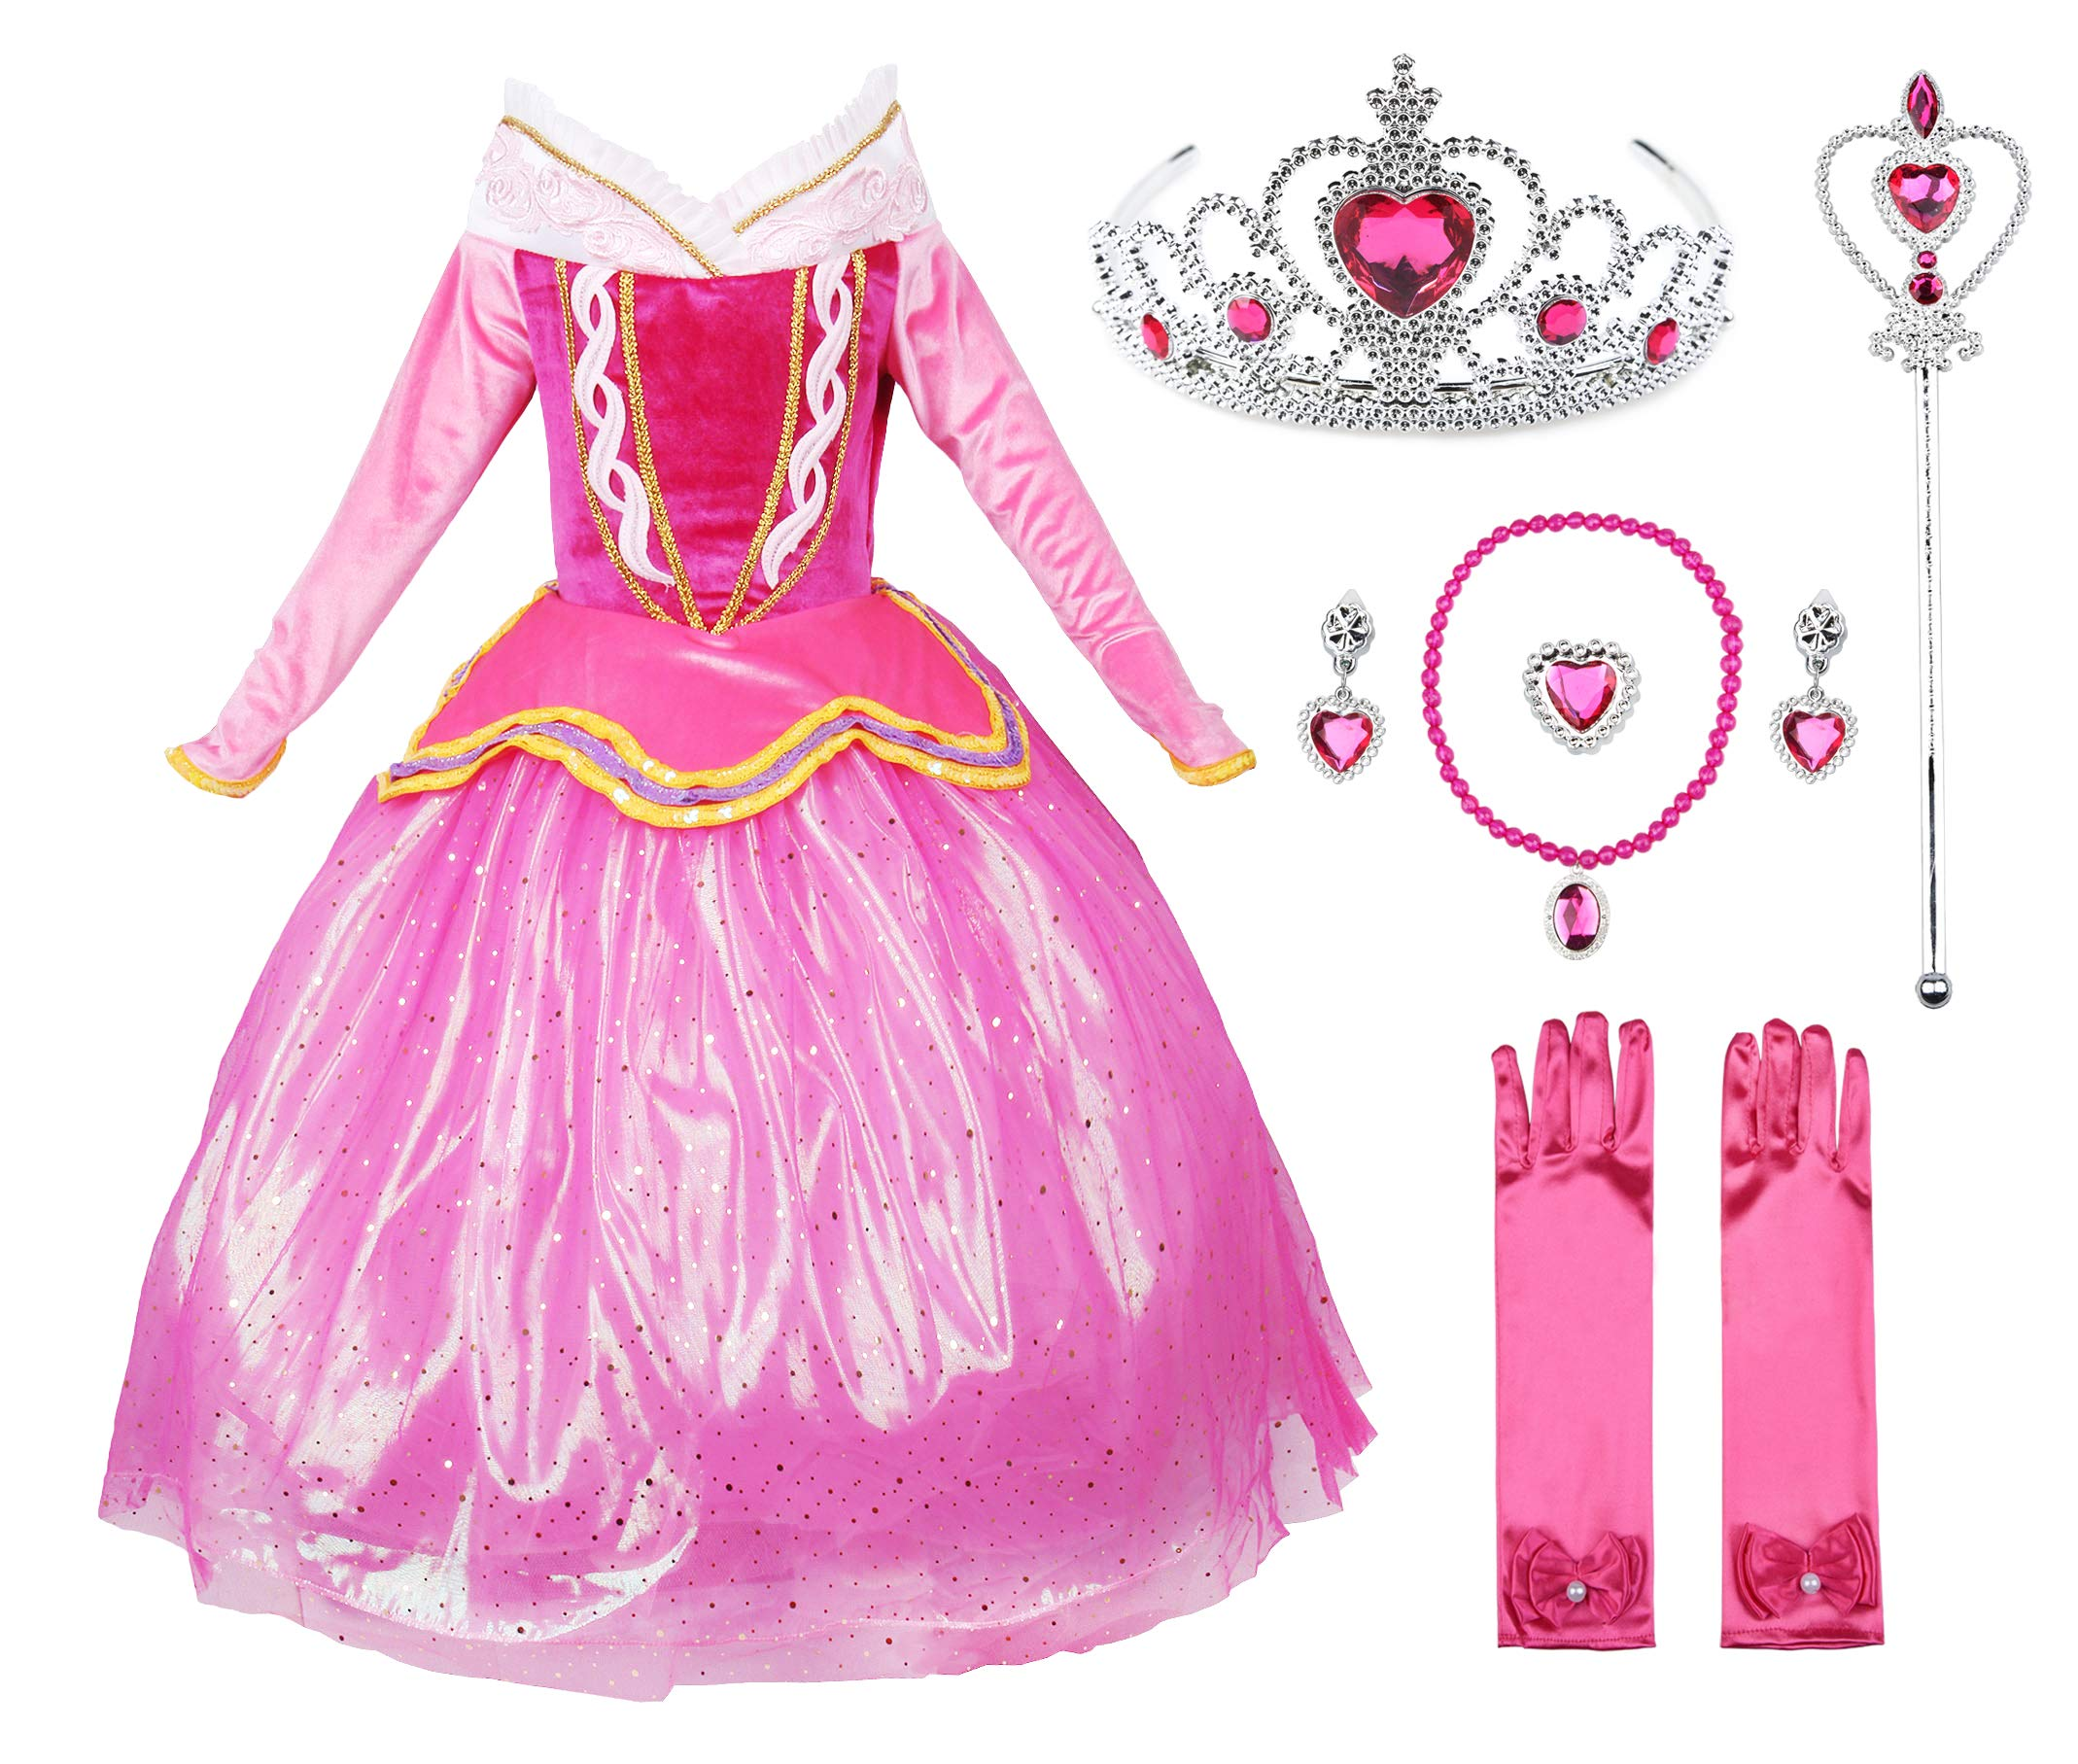 JerrisApparel Princess Aurora Dress Girl Party Dress Ceremony Fancy Costume (6, Pink with Accessories)